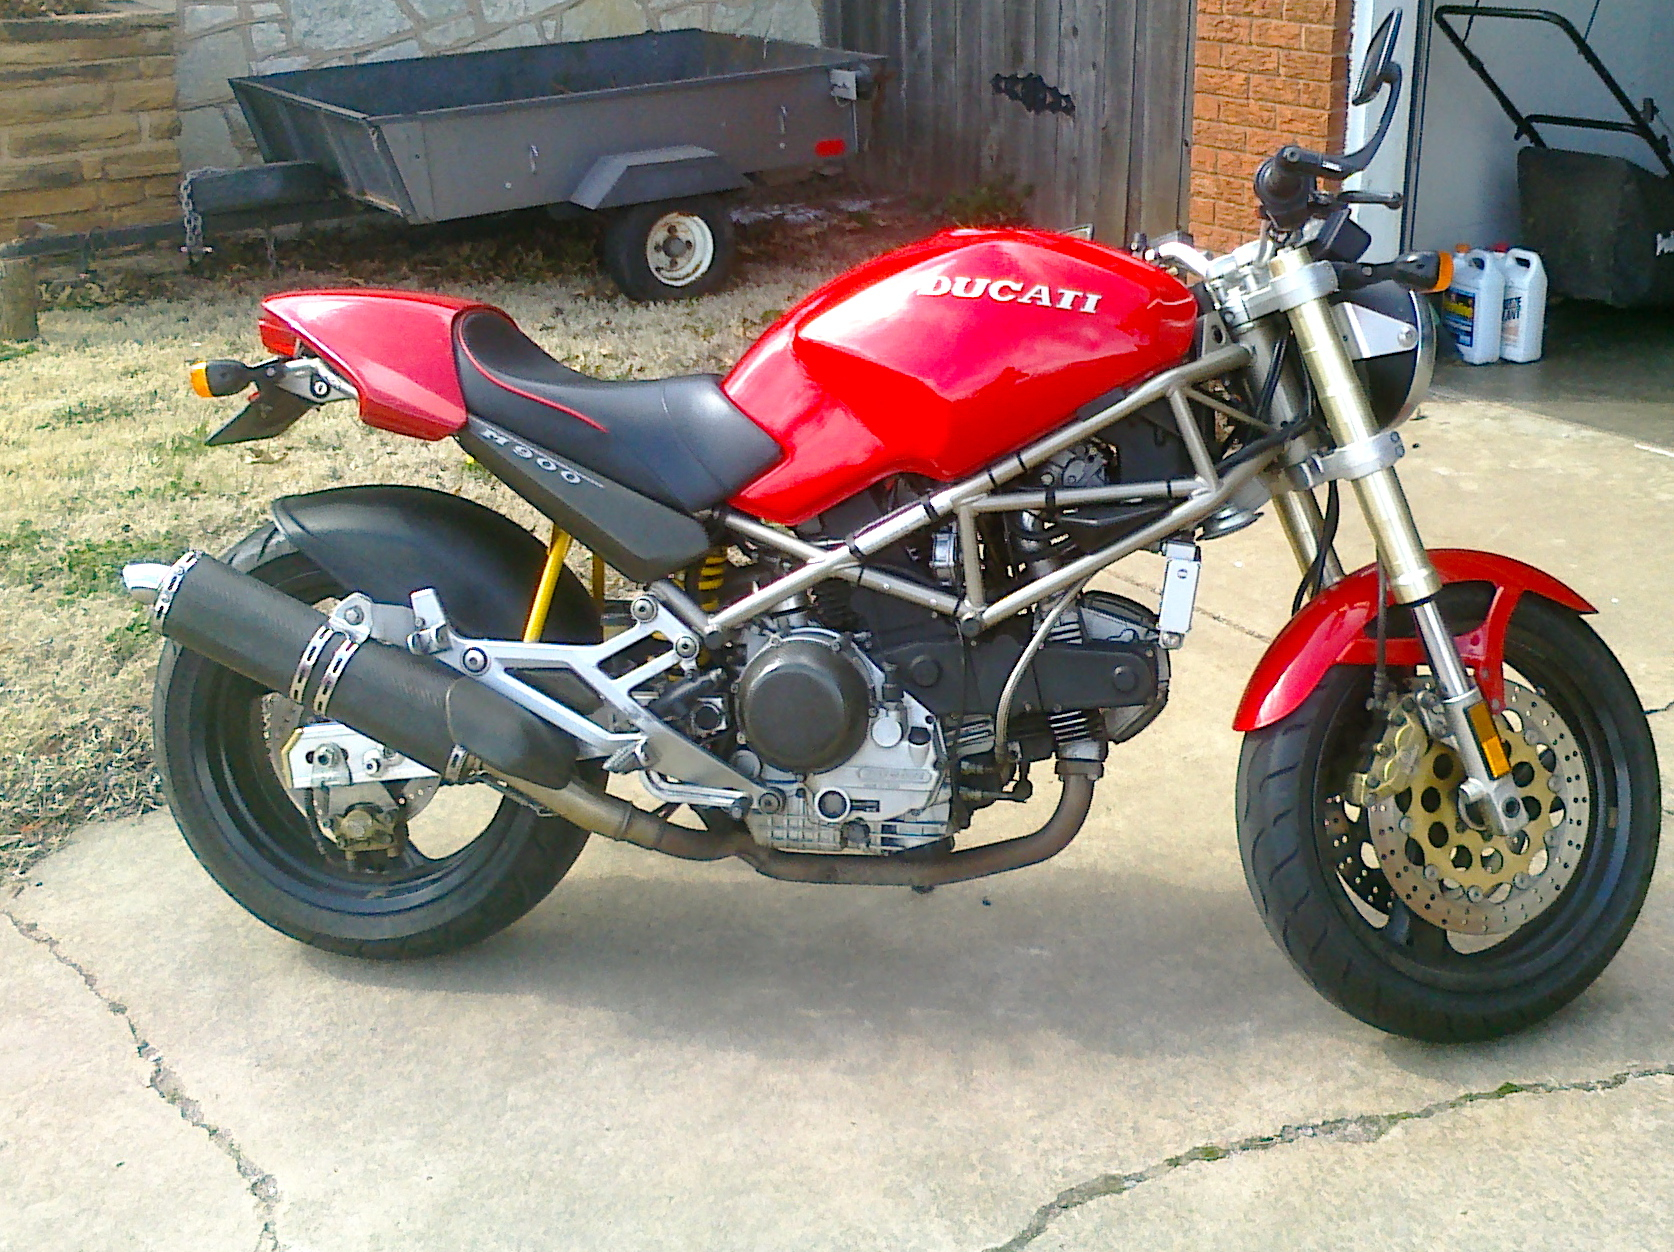 Ducati 900 Monster S 1998 images #78780